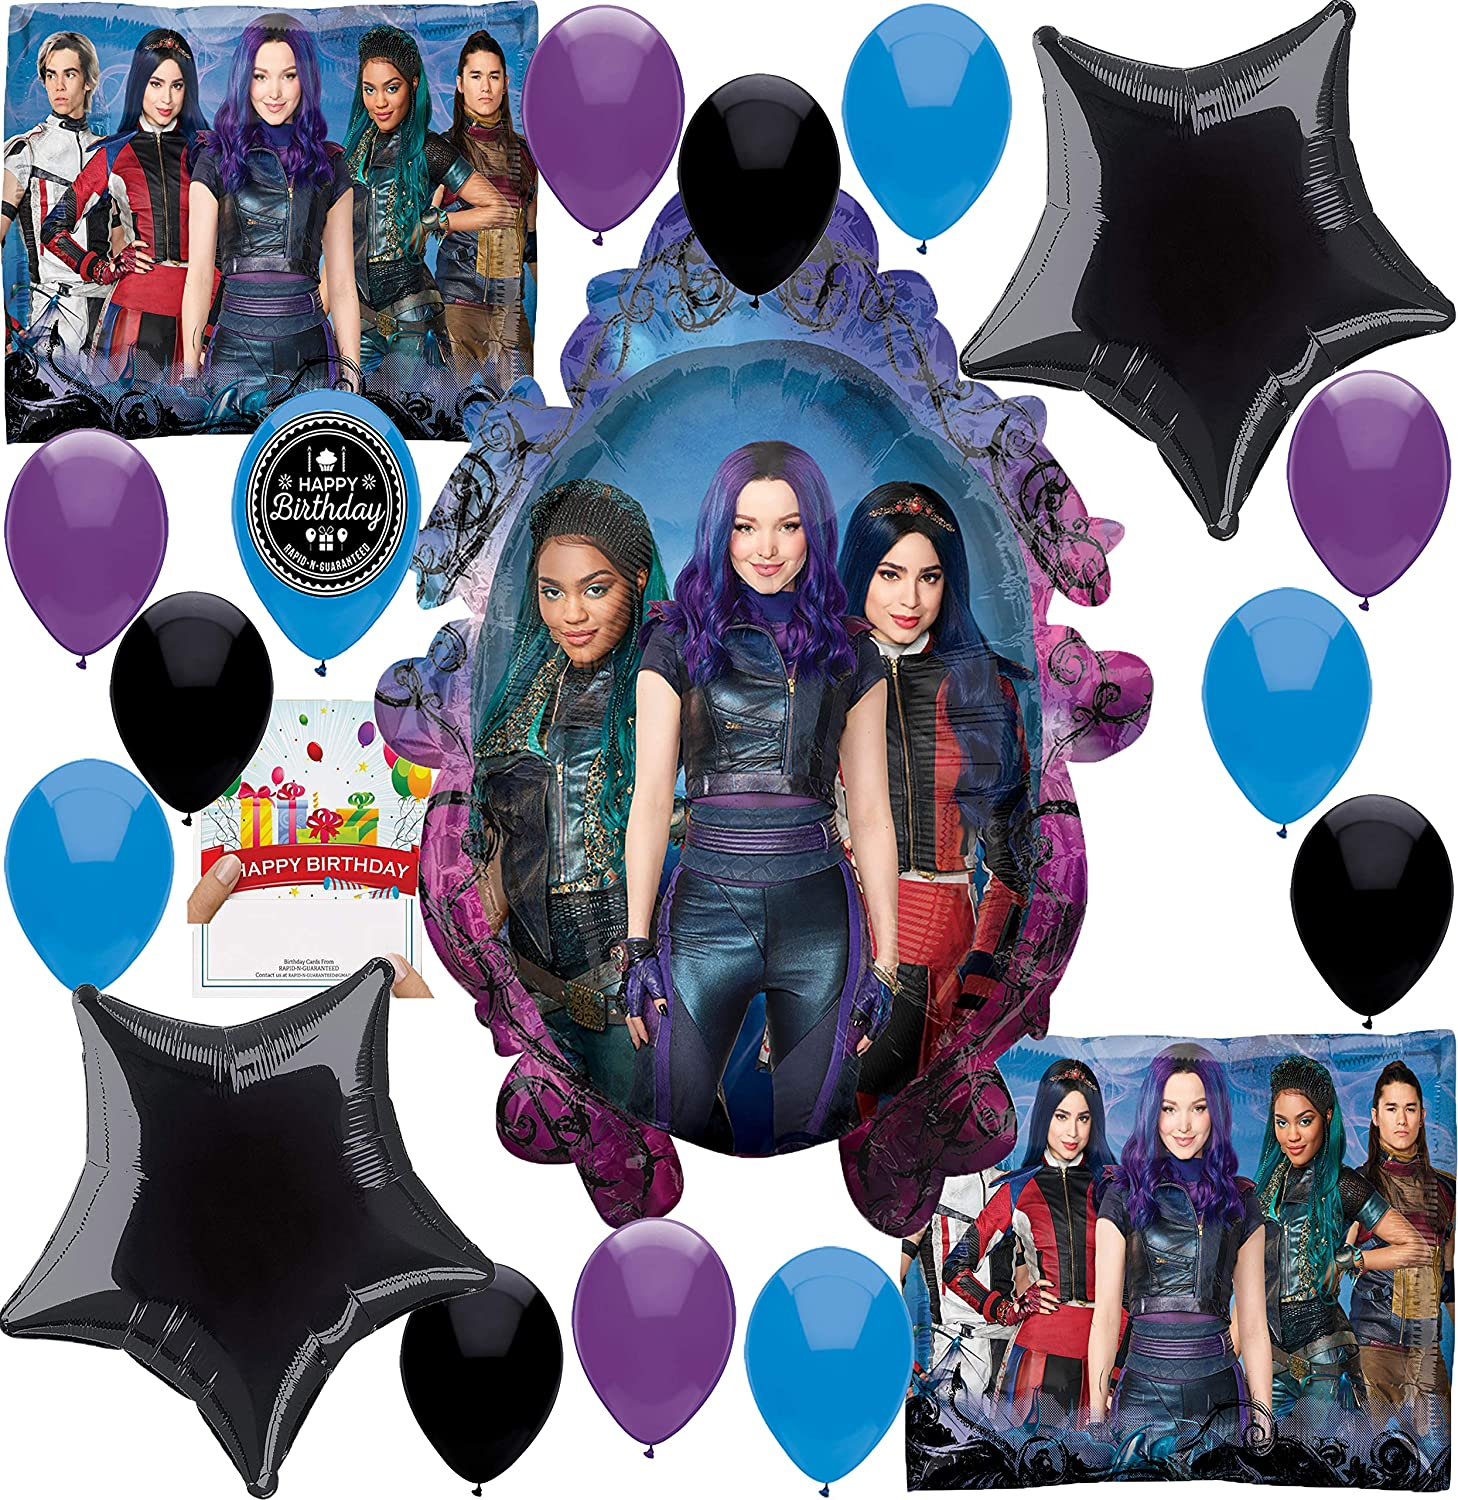 Disney Descendants Backdrop for Photography 7x5ft Descendants 3 Vinyl Photo Background Girls Kids Birthday Party Decorations Supplies Backgrounds Customized Studio Banner